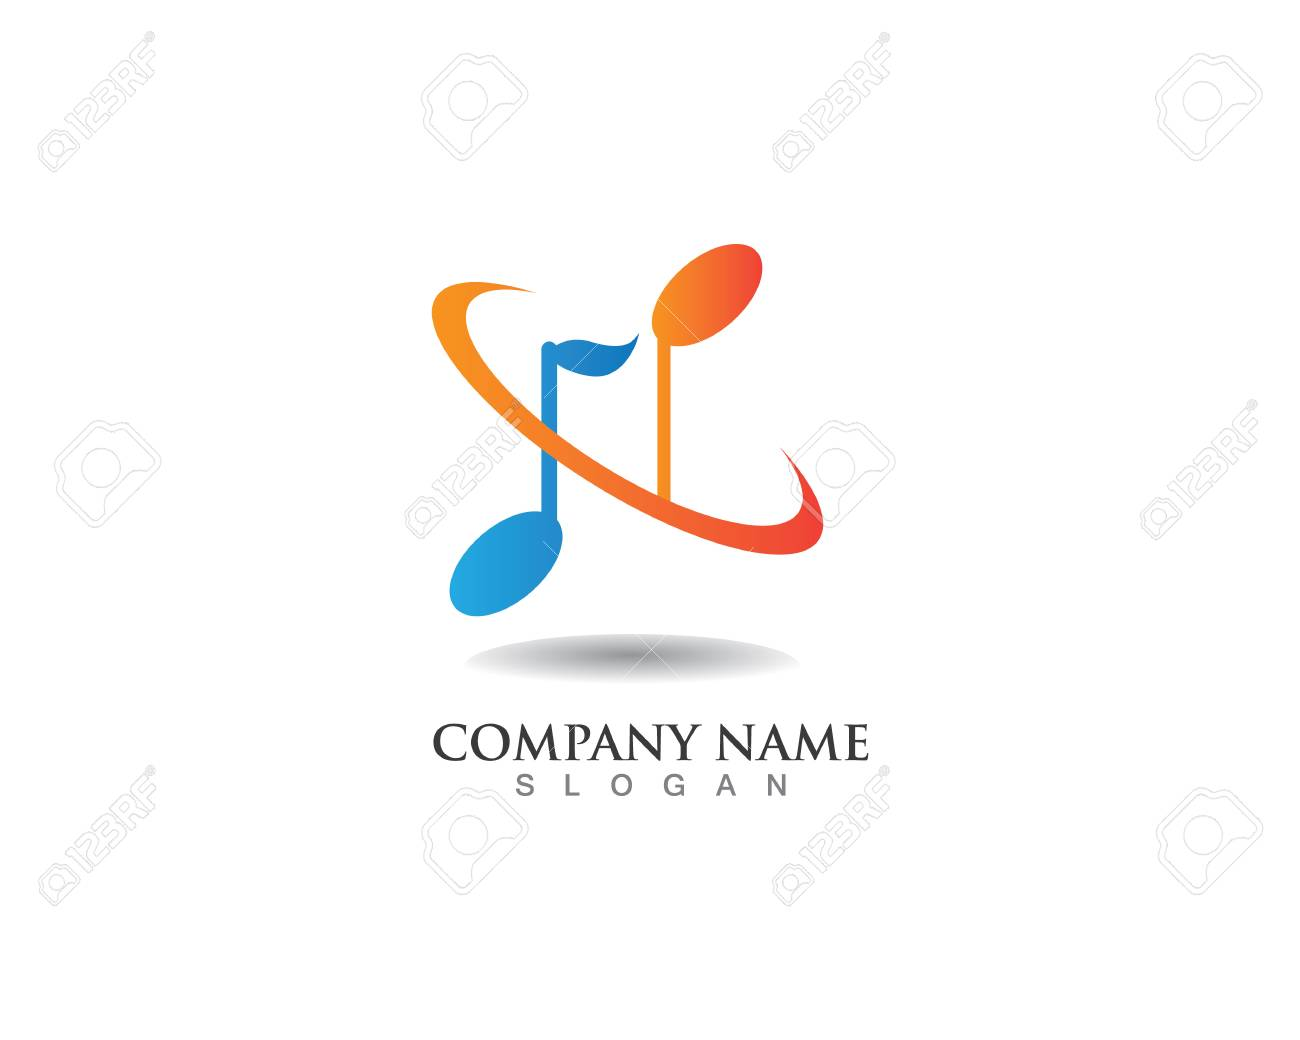 Music symbols logo royalty free cliparts vectors and stock music symbols logo stock vector 76647307 biocorpaavc Image collections